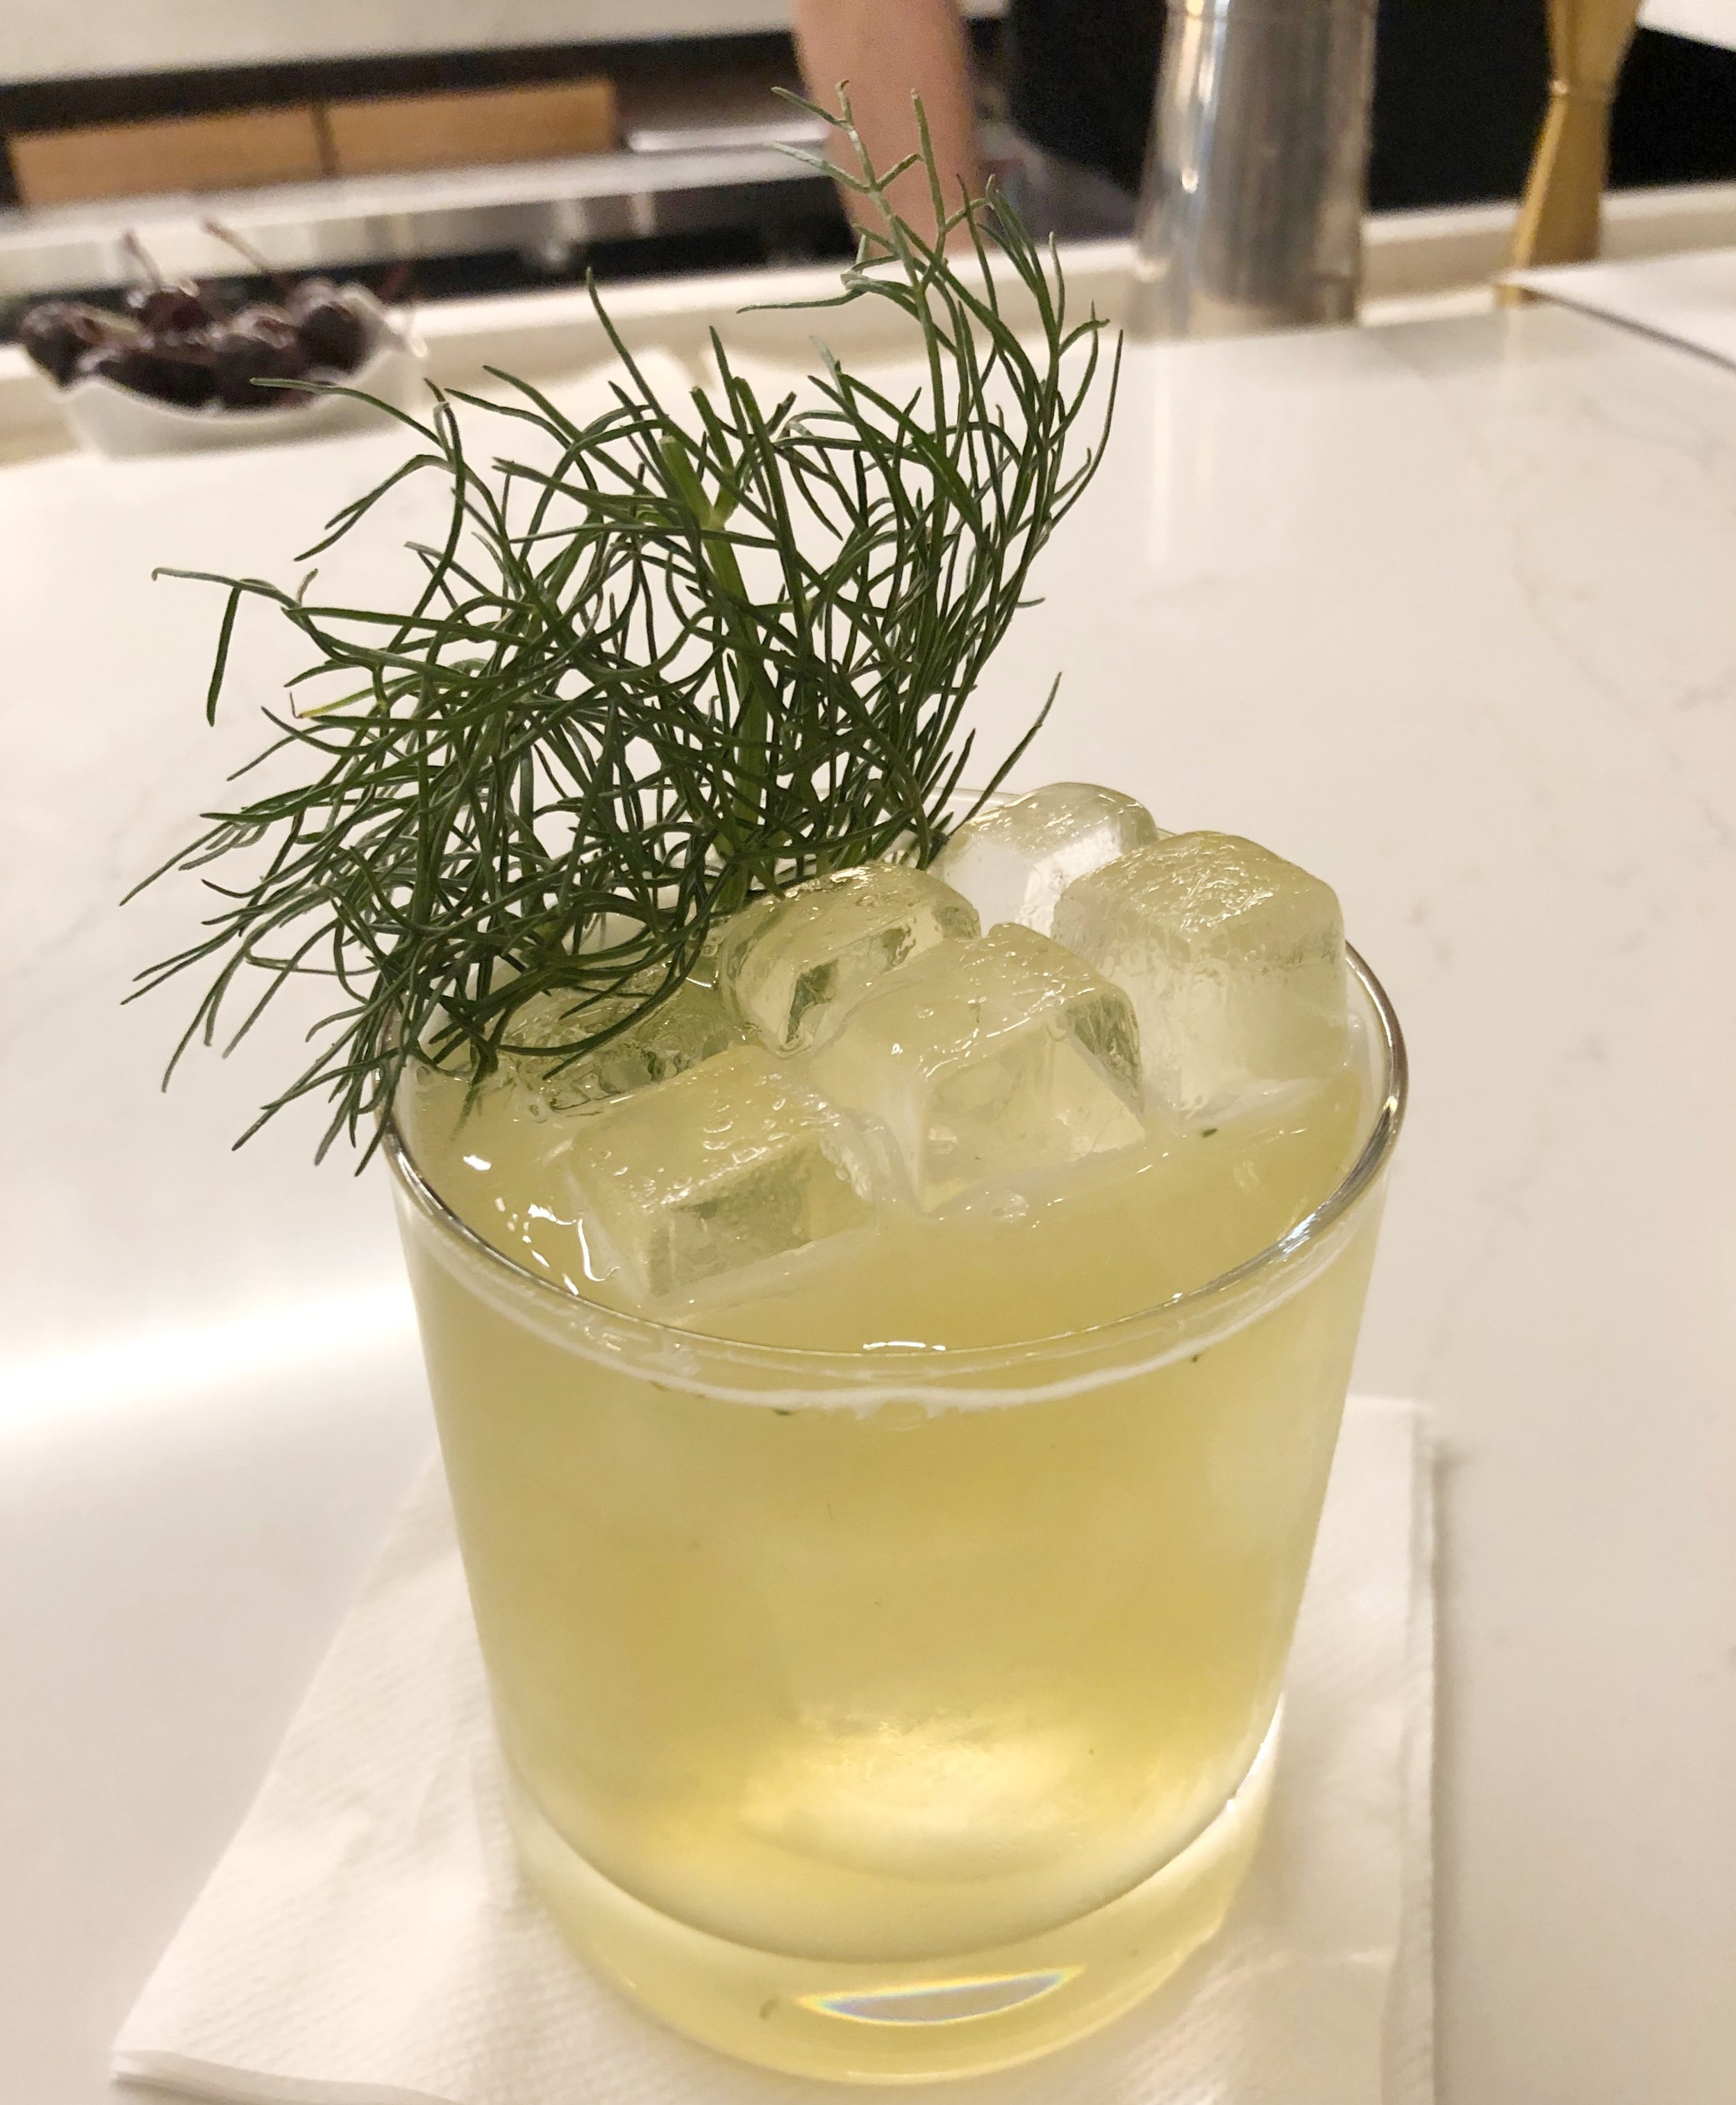 Honey Mocktail - Mr. Suggs made Jason this honey mocktail that he hasn't stopped raving about since.